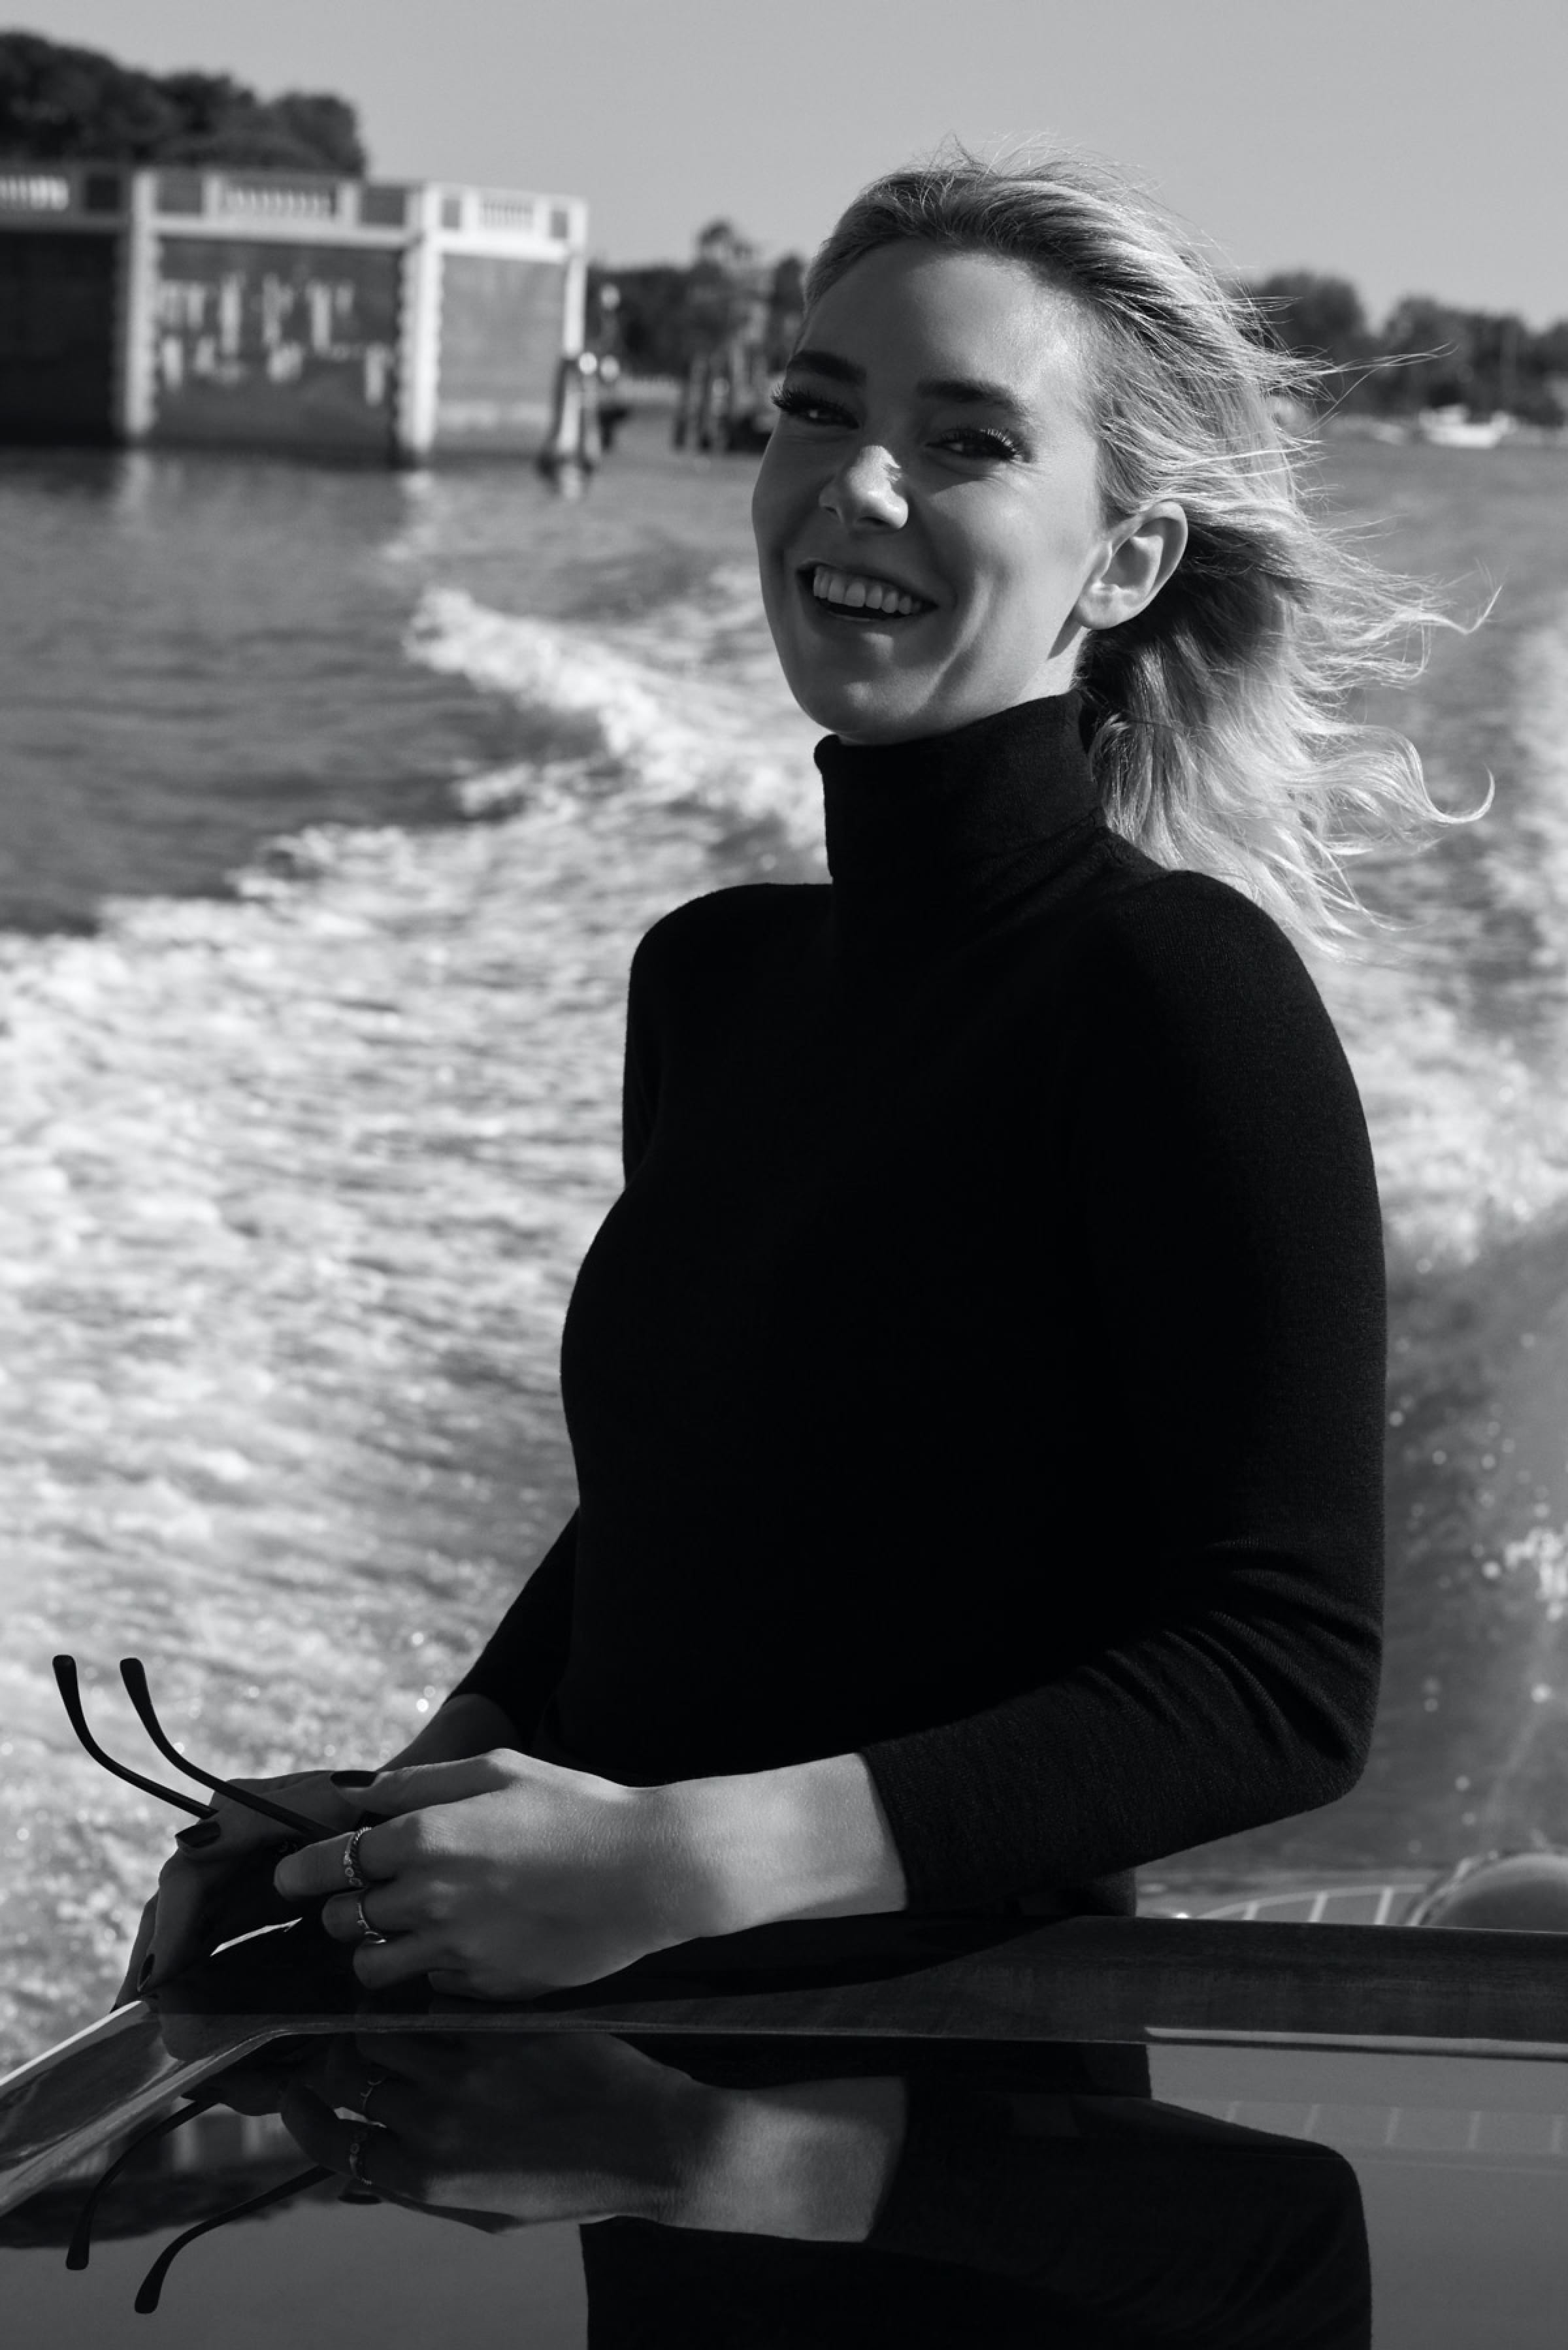 Vanessa Kirby smiles as she stands on a boat, her hair blowing in the wind.